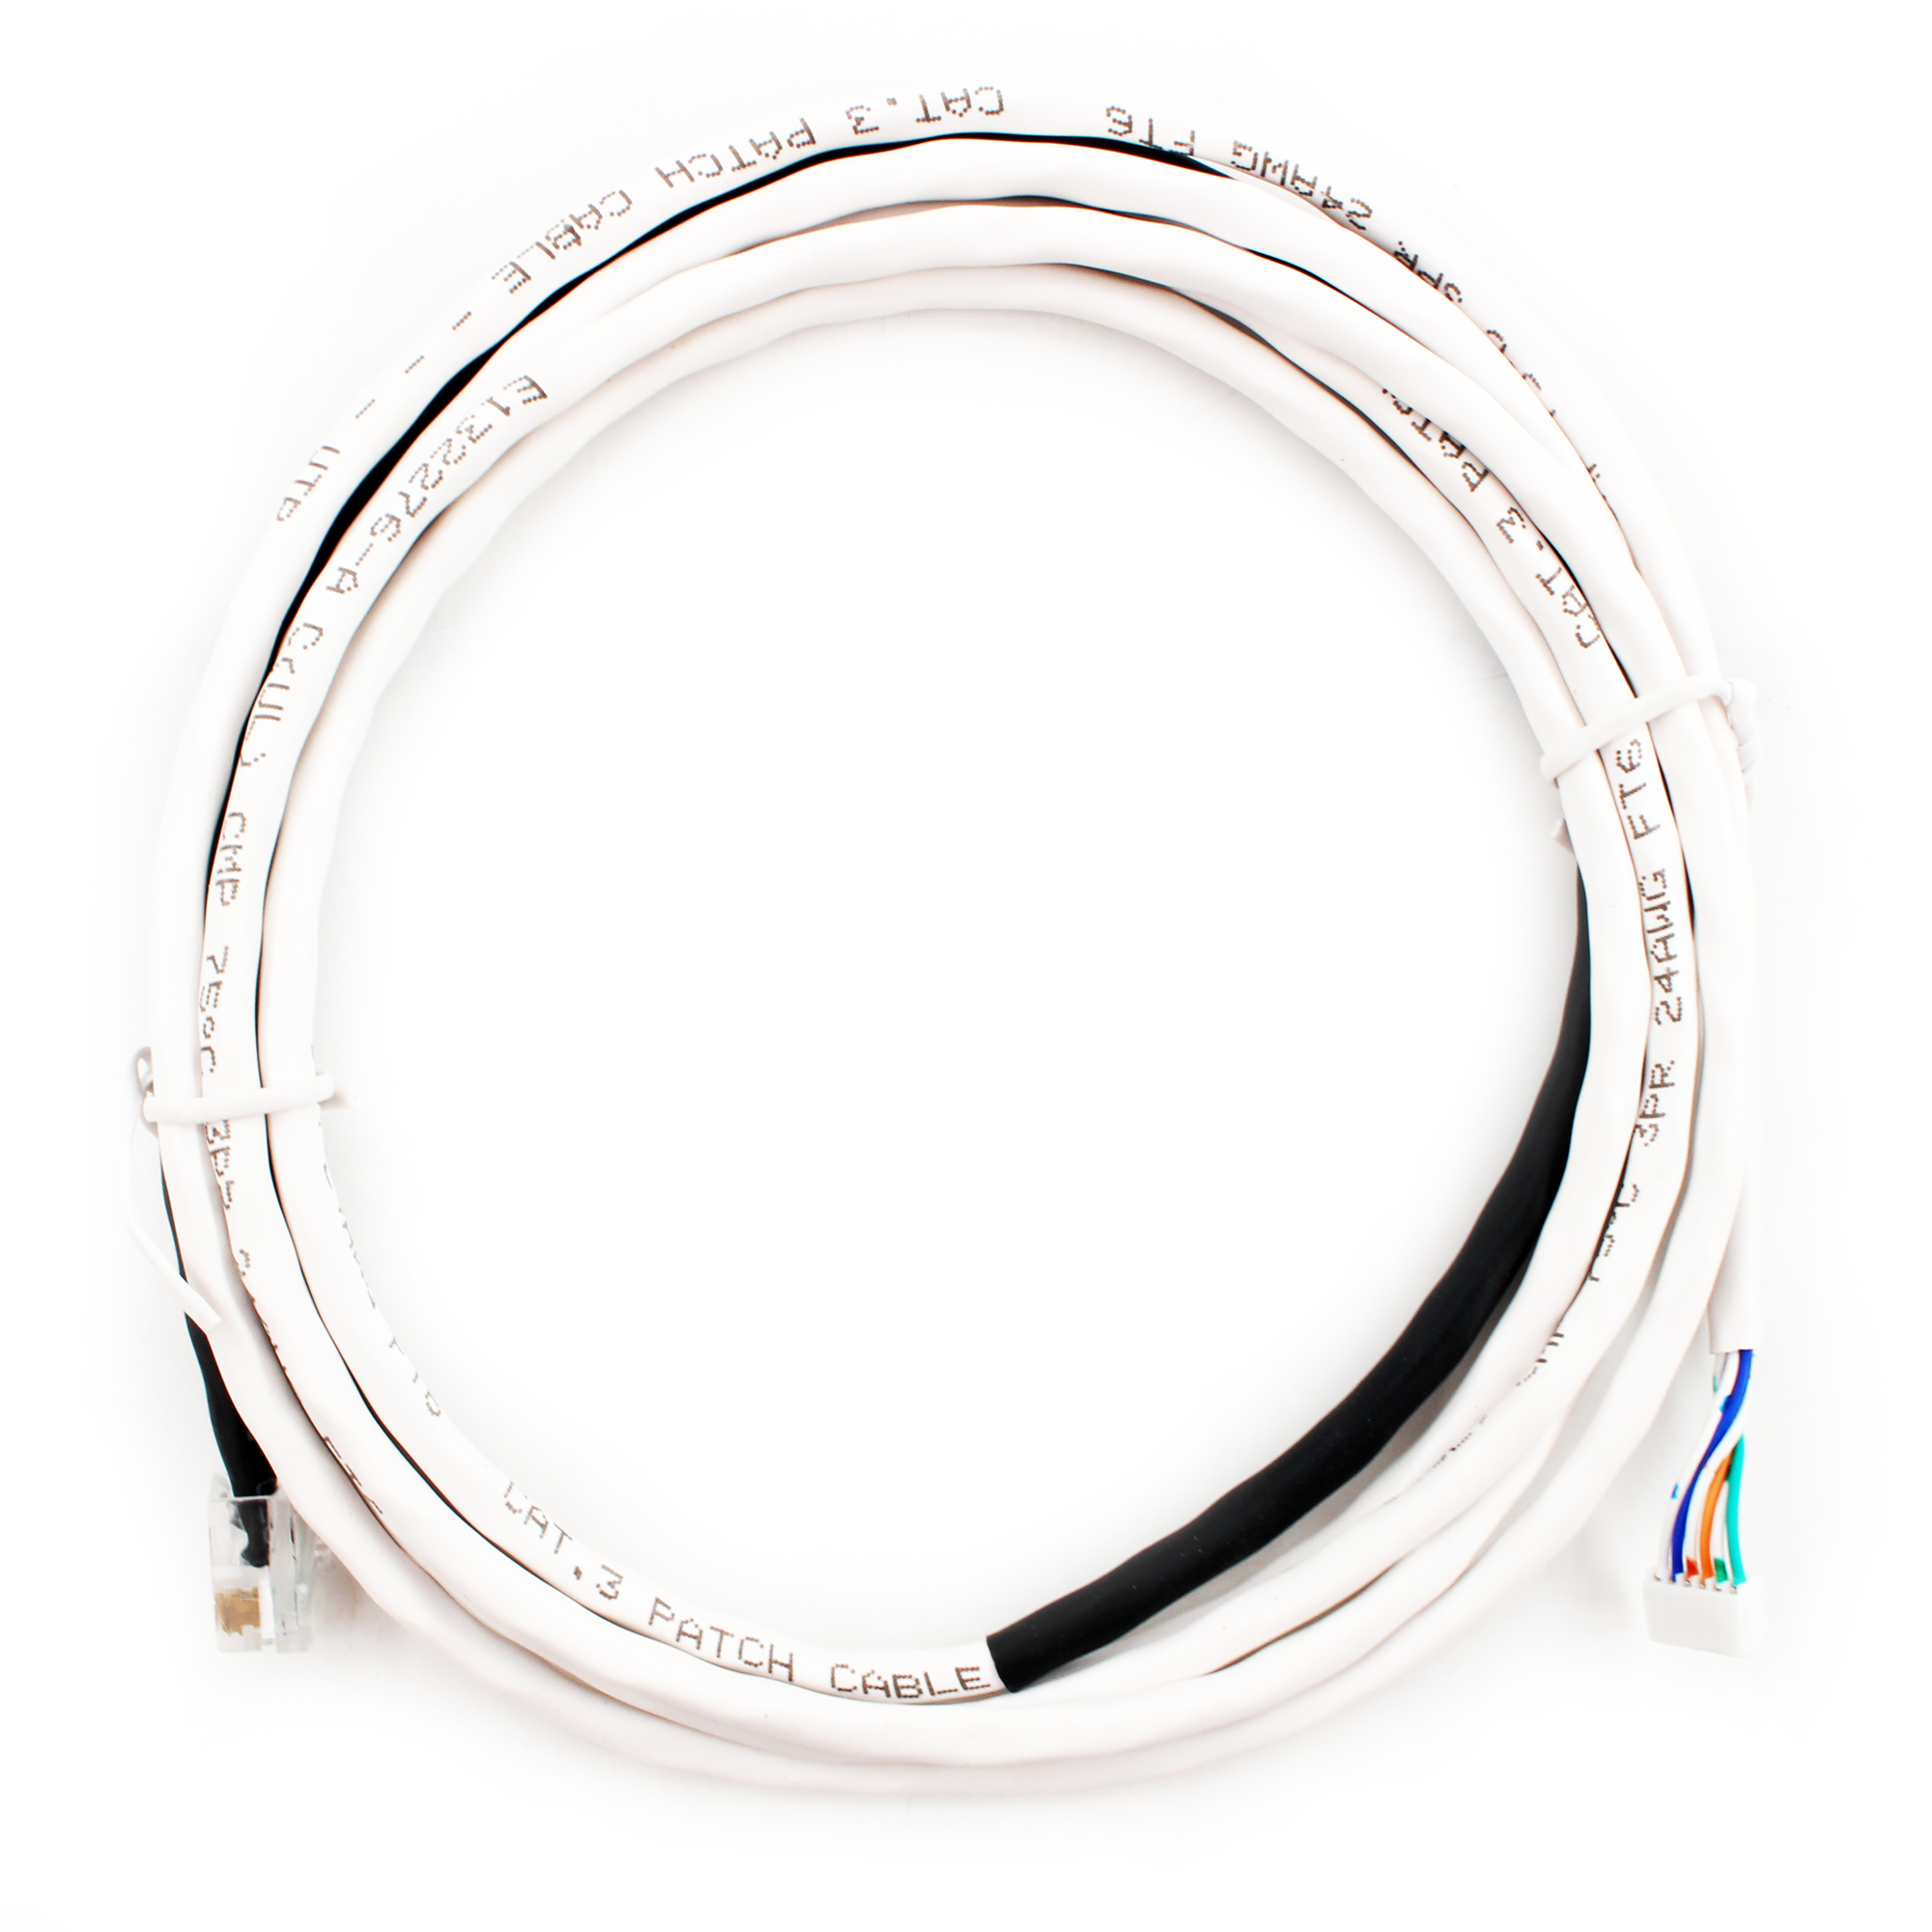 Enlightened Lighting 12 01 Occupancy Sensor Cable